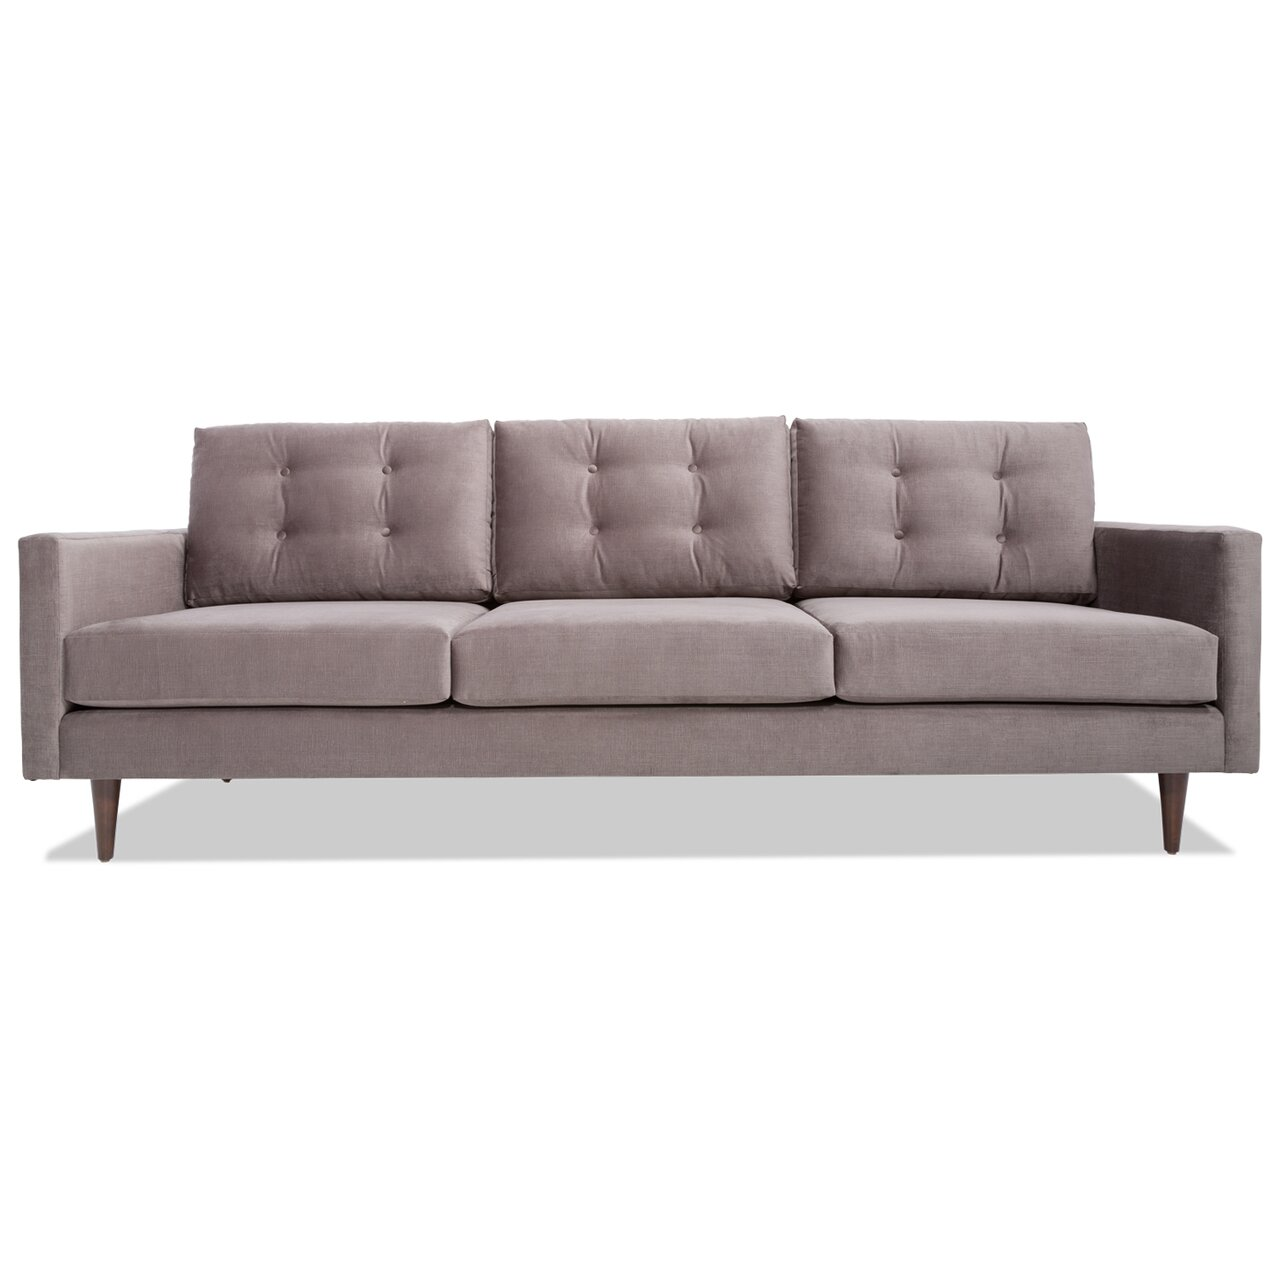 Danish modern sleeper sofa danish mid century modern back for Modern love seats